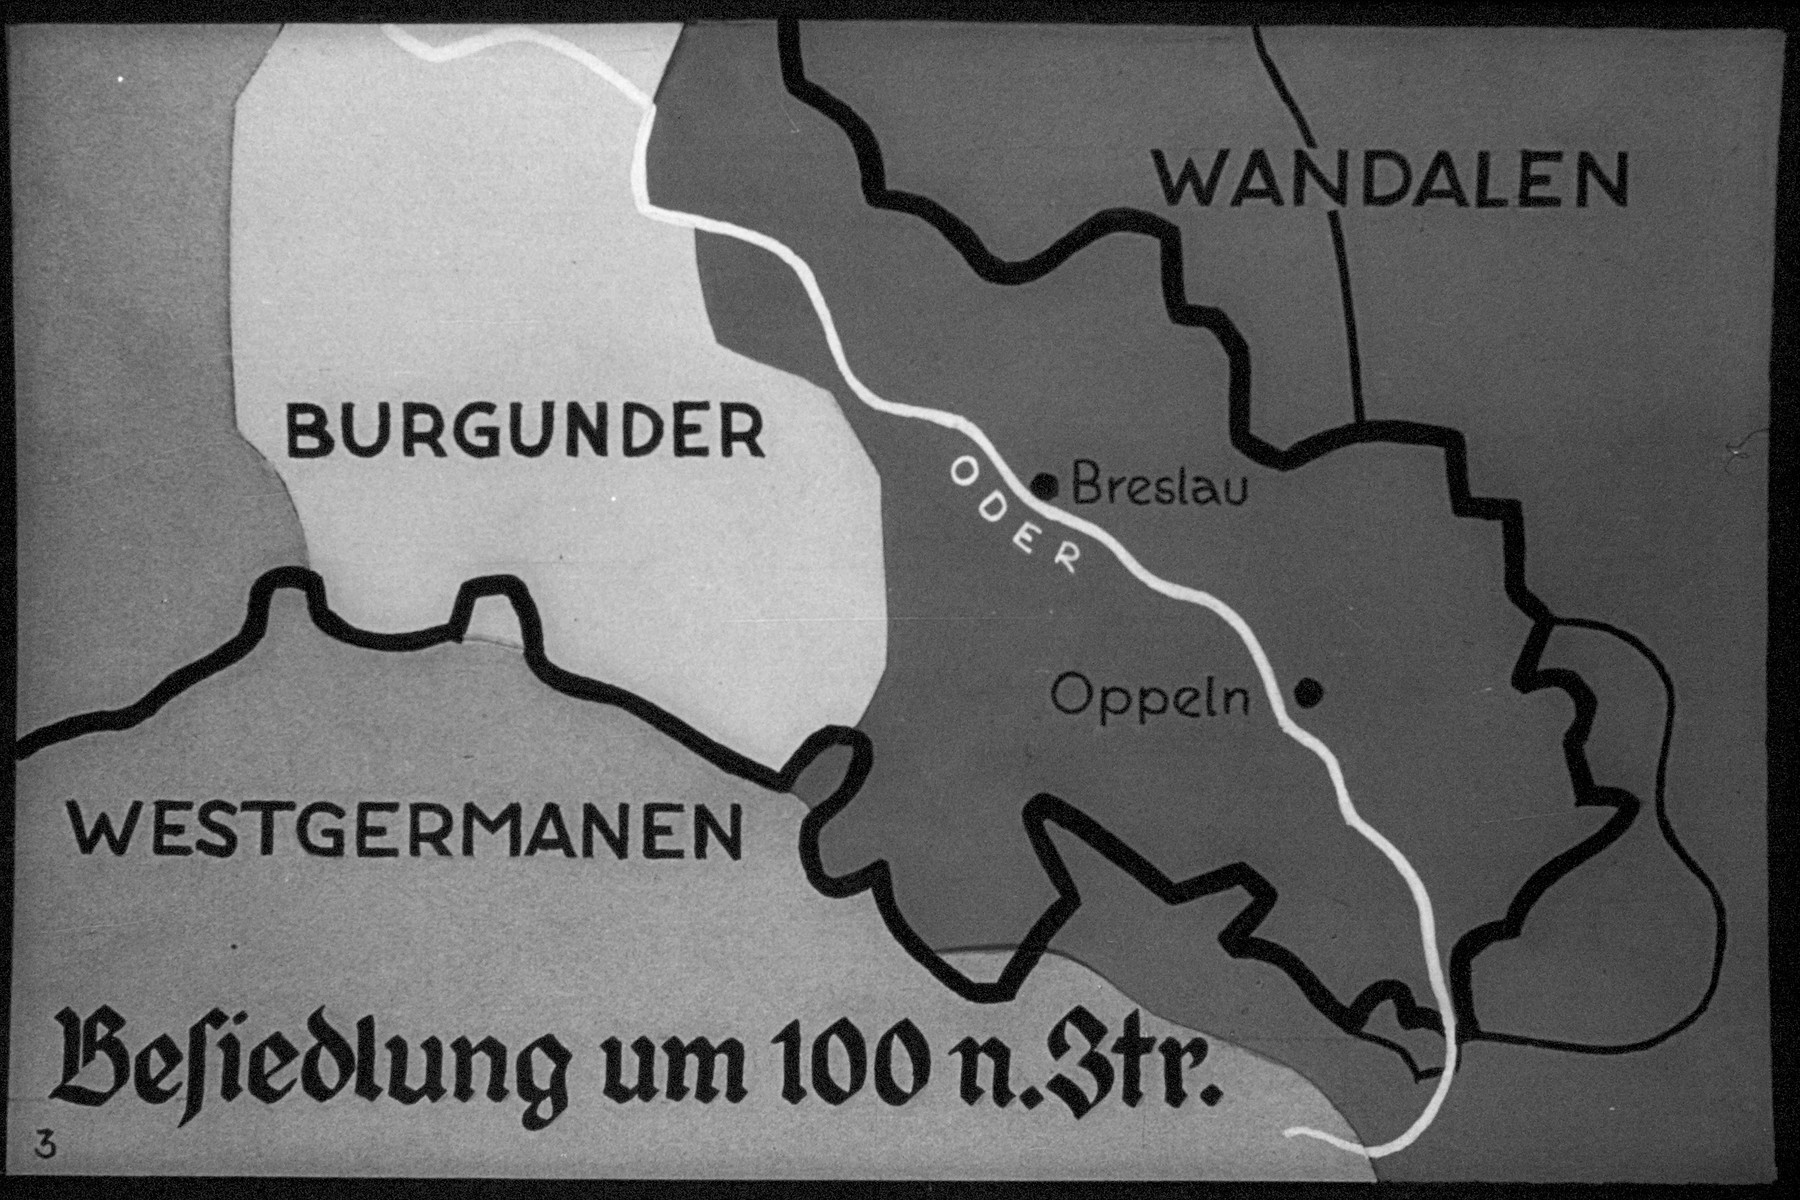 """5th Nazi propaganda slide from Hitler Youth educational material titled """"Border Land Upper Silesia.""""  Besiedlung um 100 n.Ztr. // Colonization by 100 n.Ztr."""